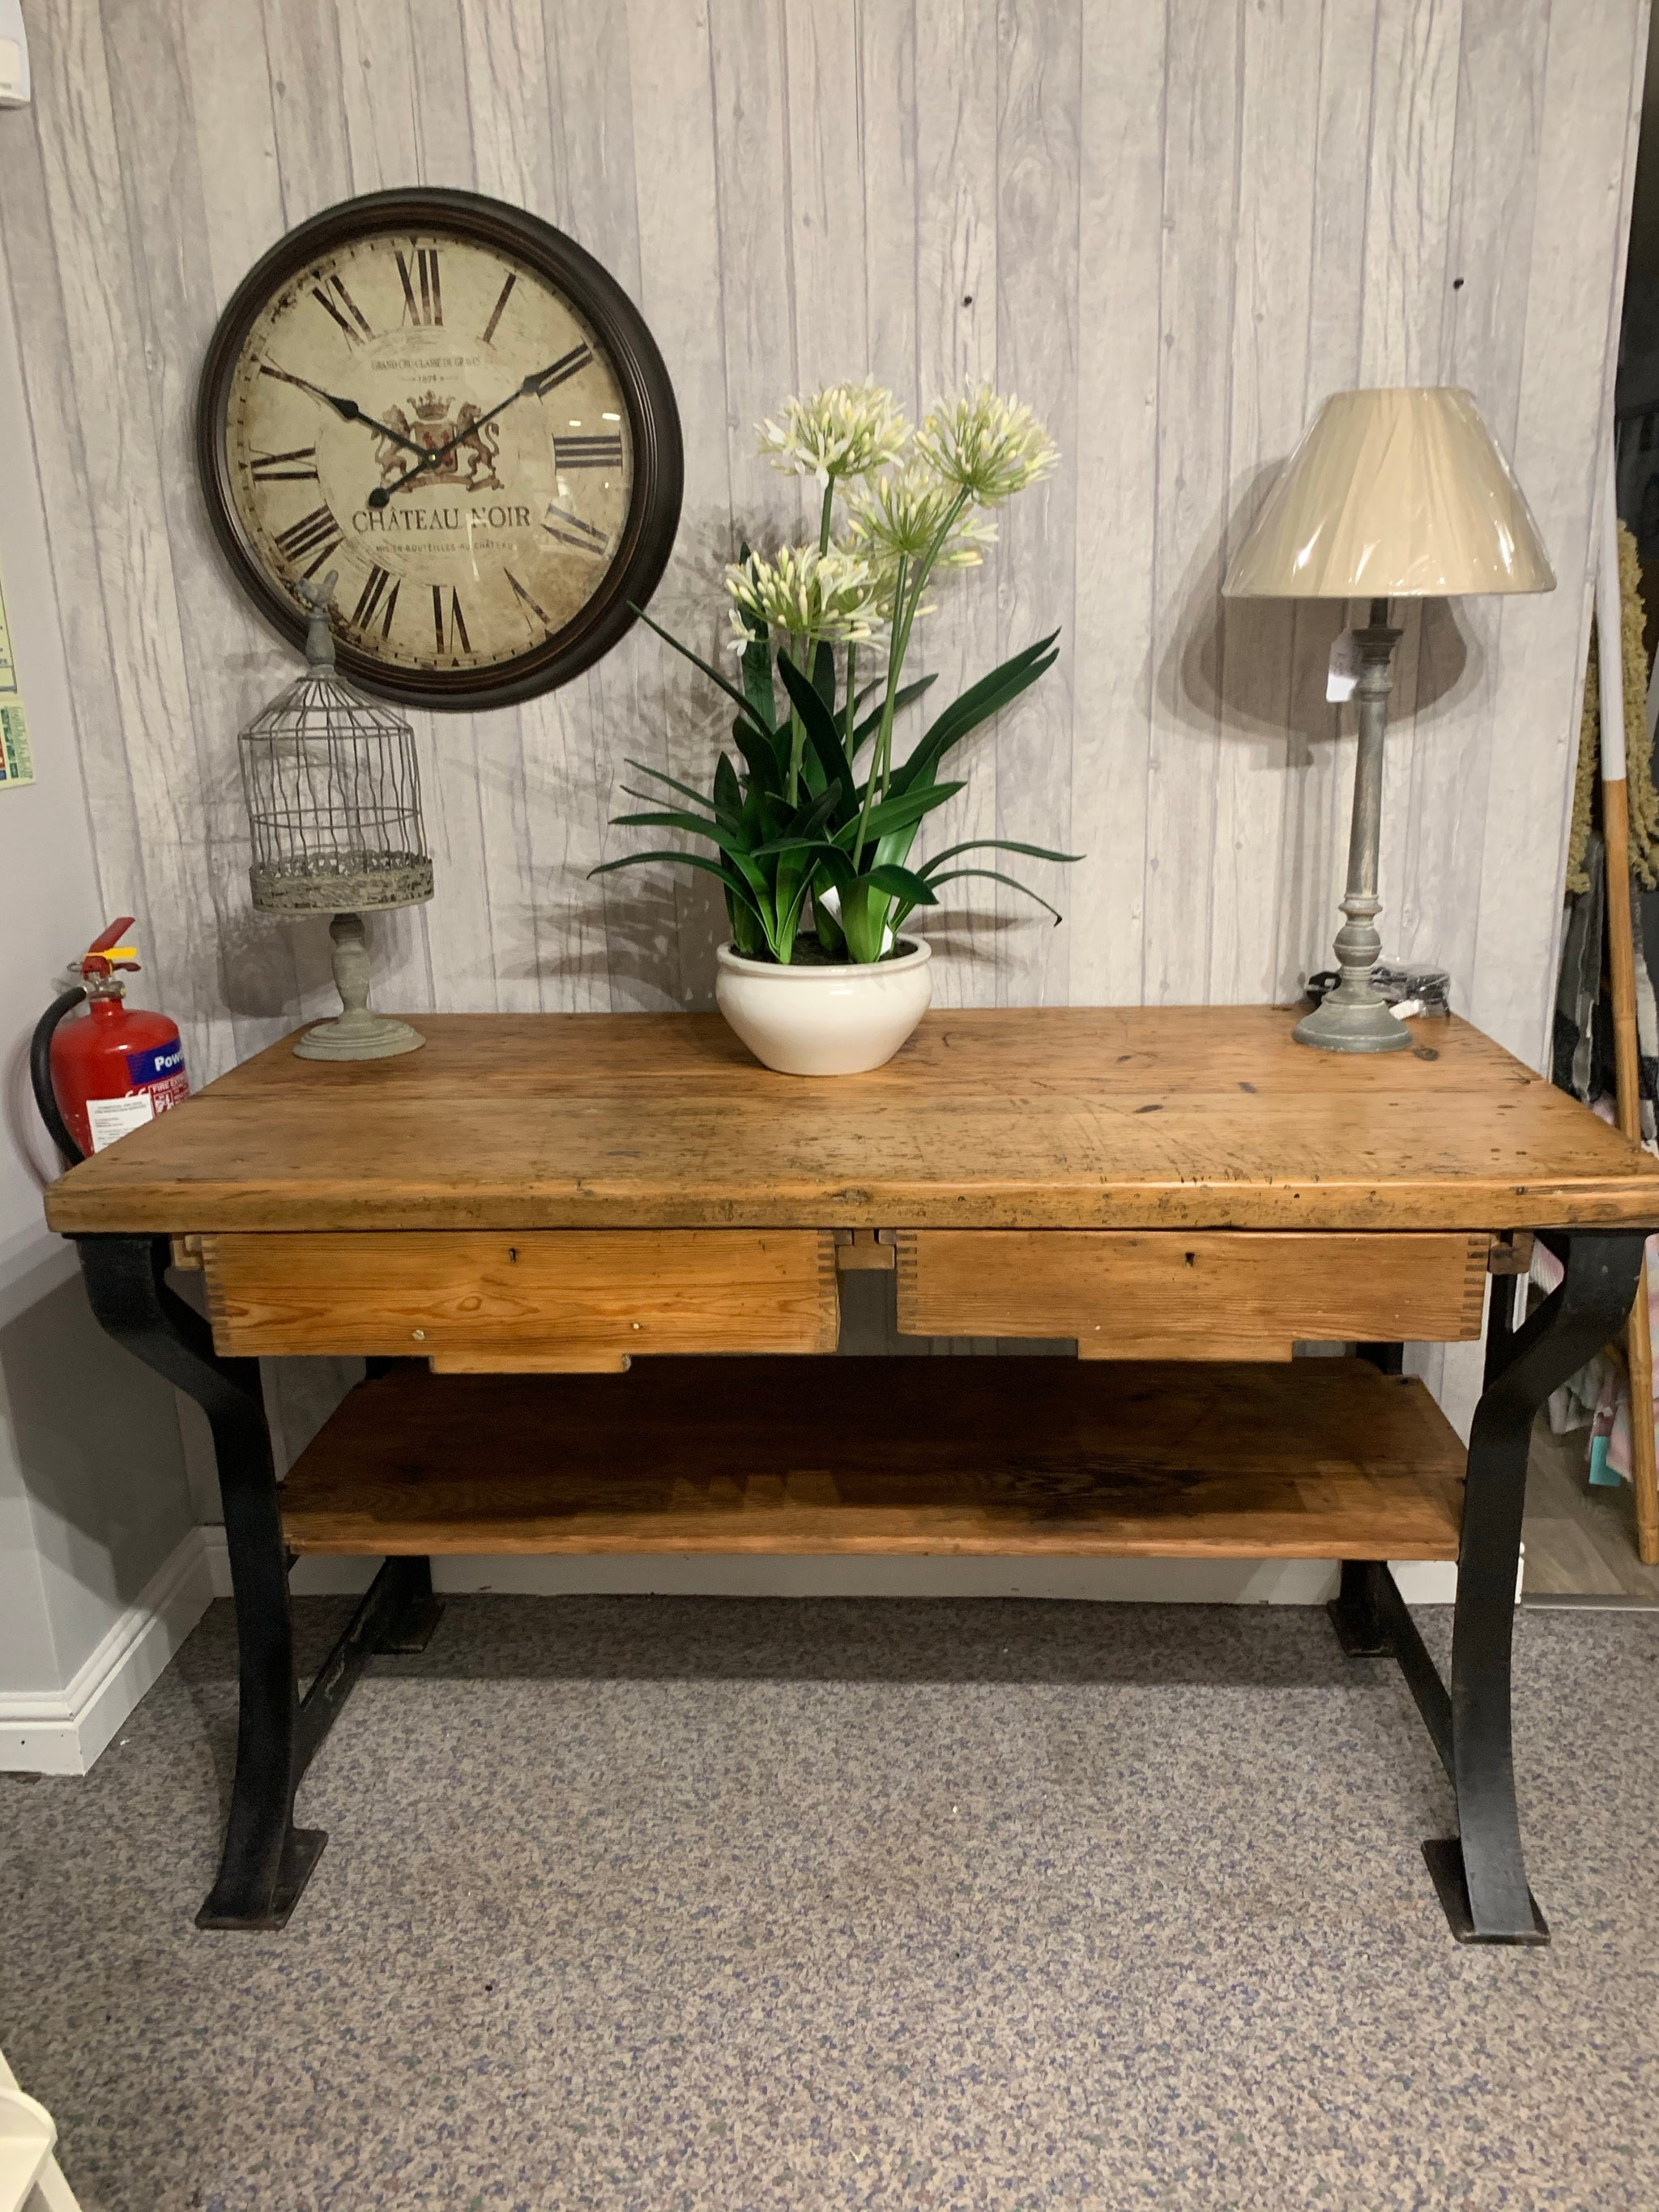 Vintage wooden workbench